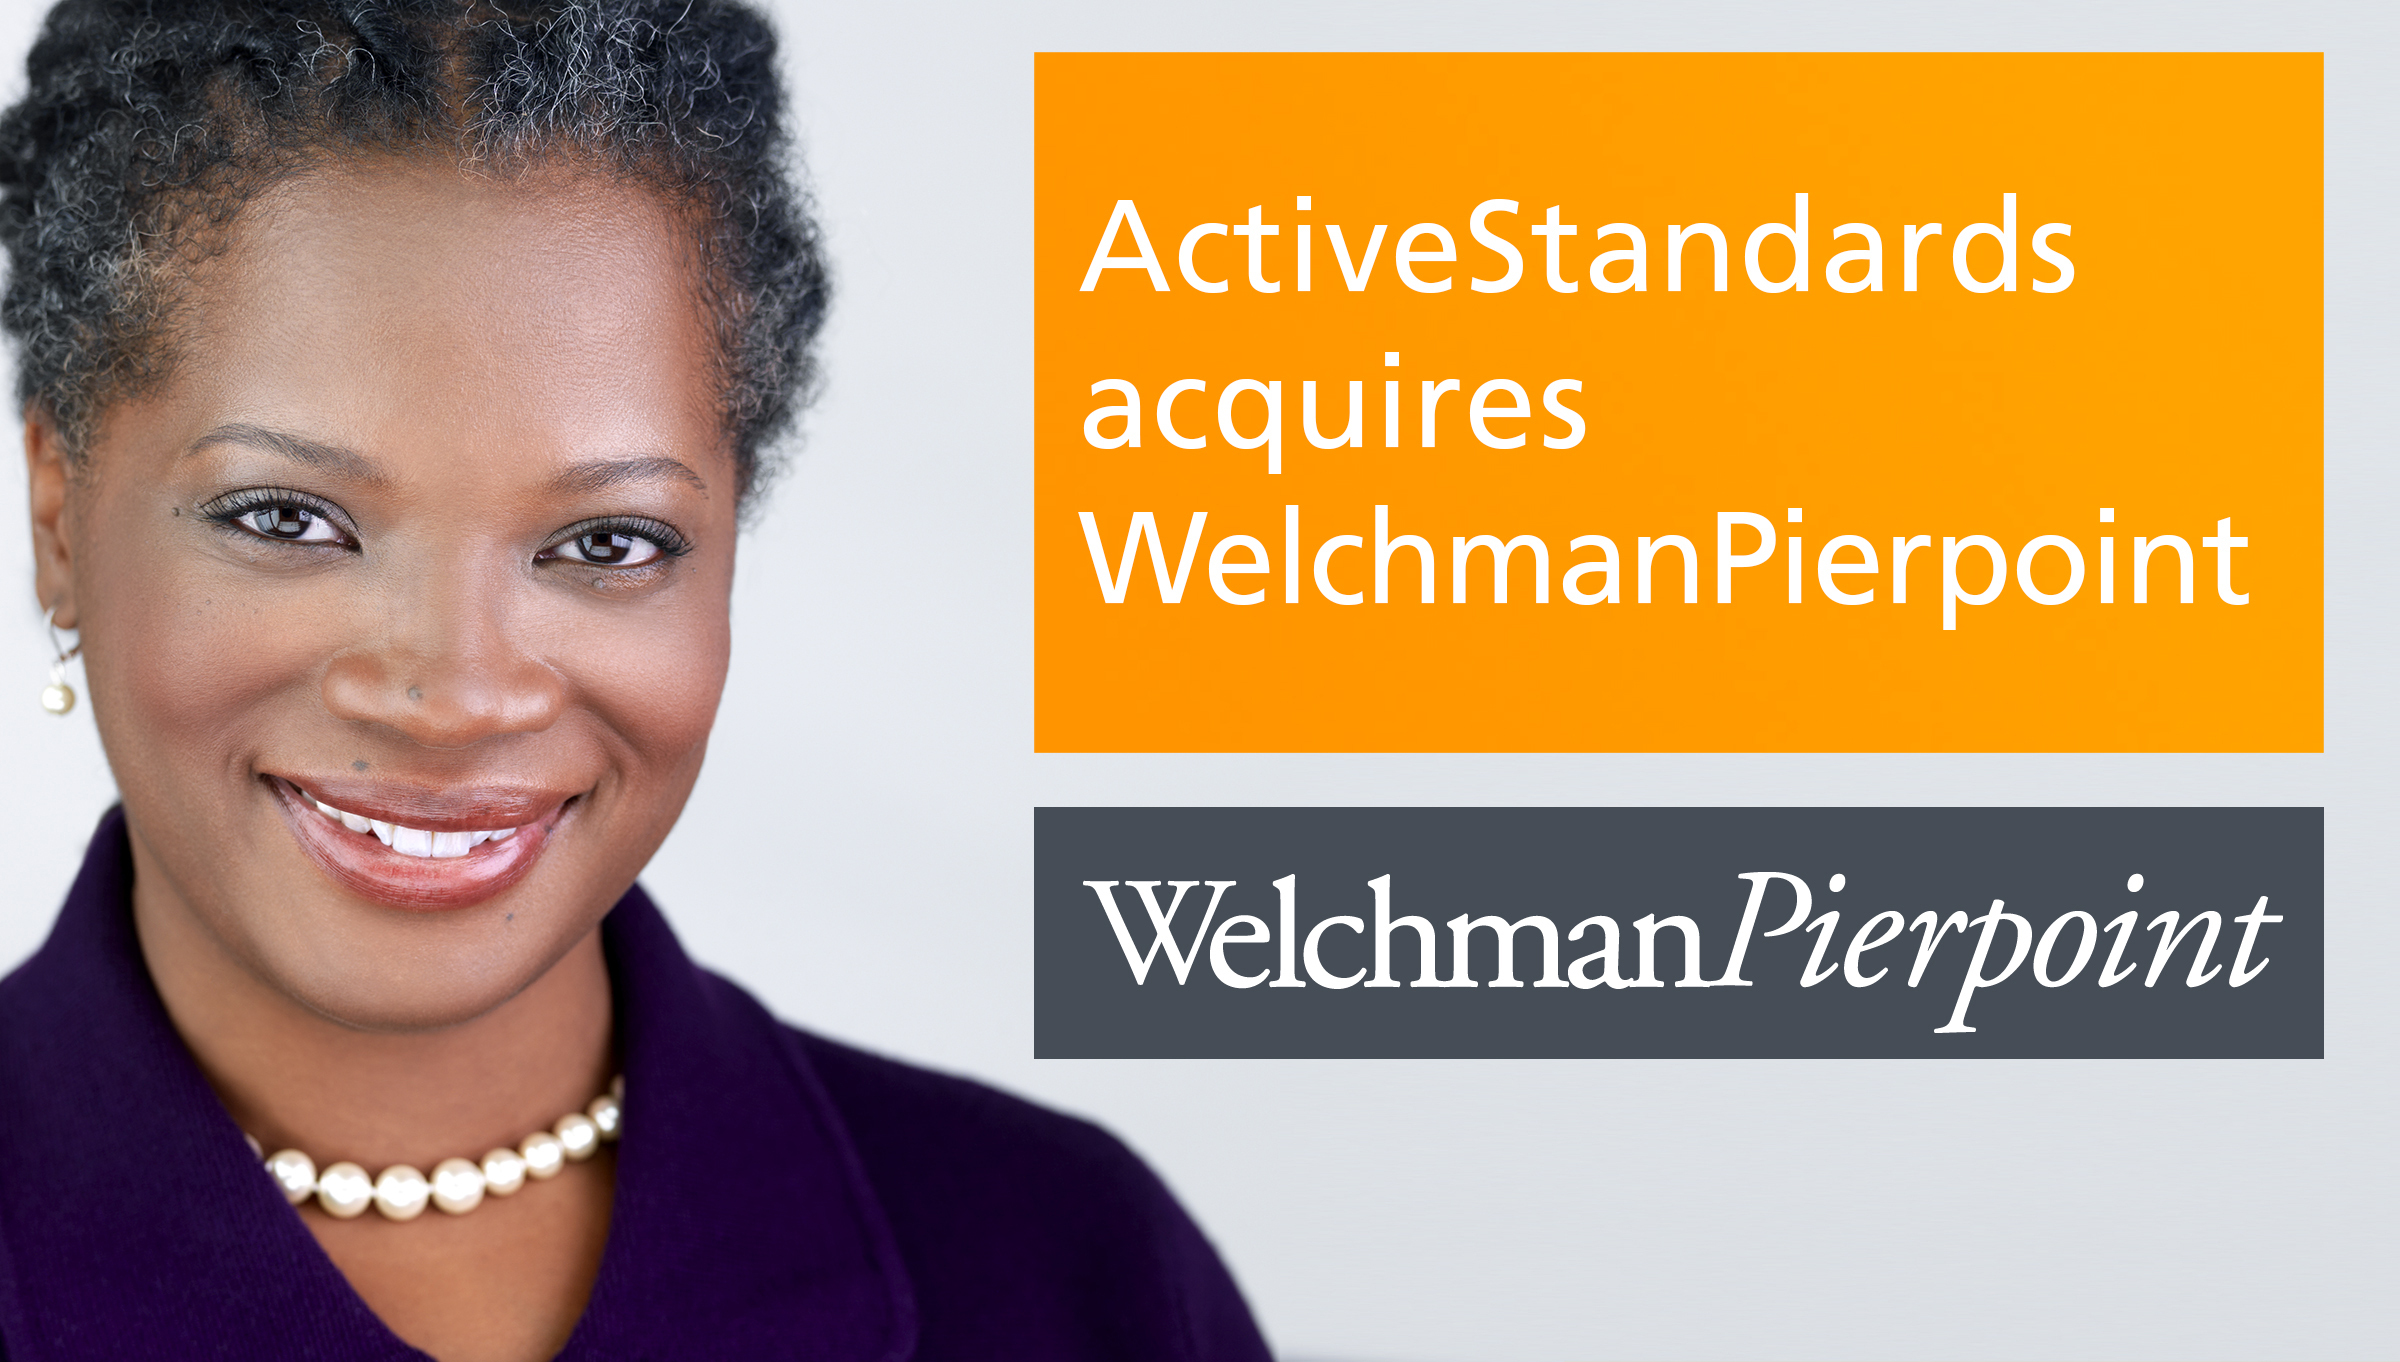 ActiveStandards Acquires WelchmanPierpoint